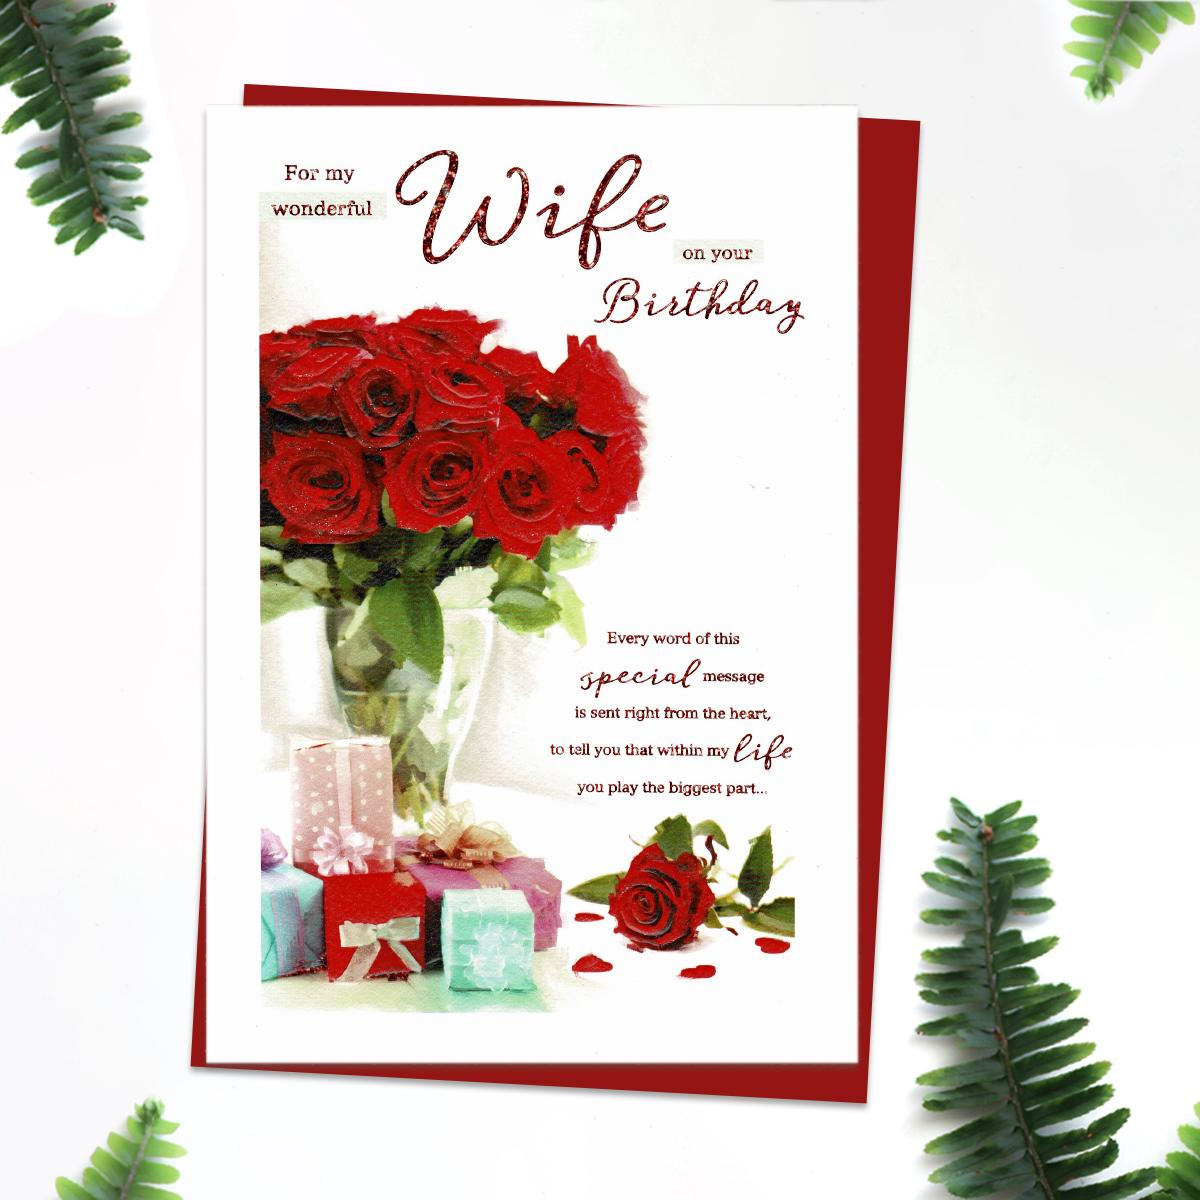 'For My Wonderful Wife On Your Birthday' Featuring Red Roses And Gifts. Complete With red Envelope